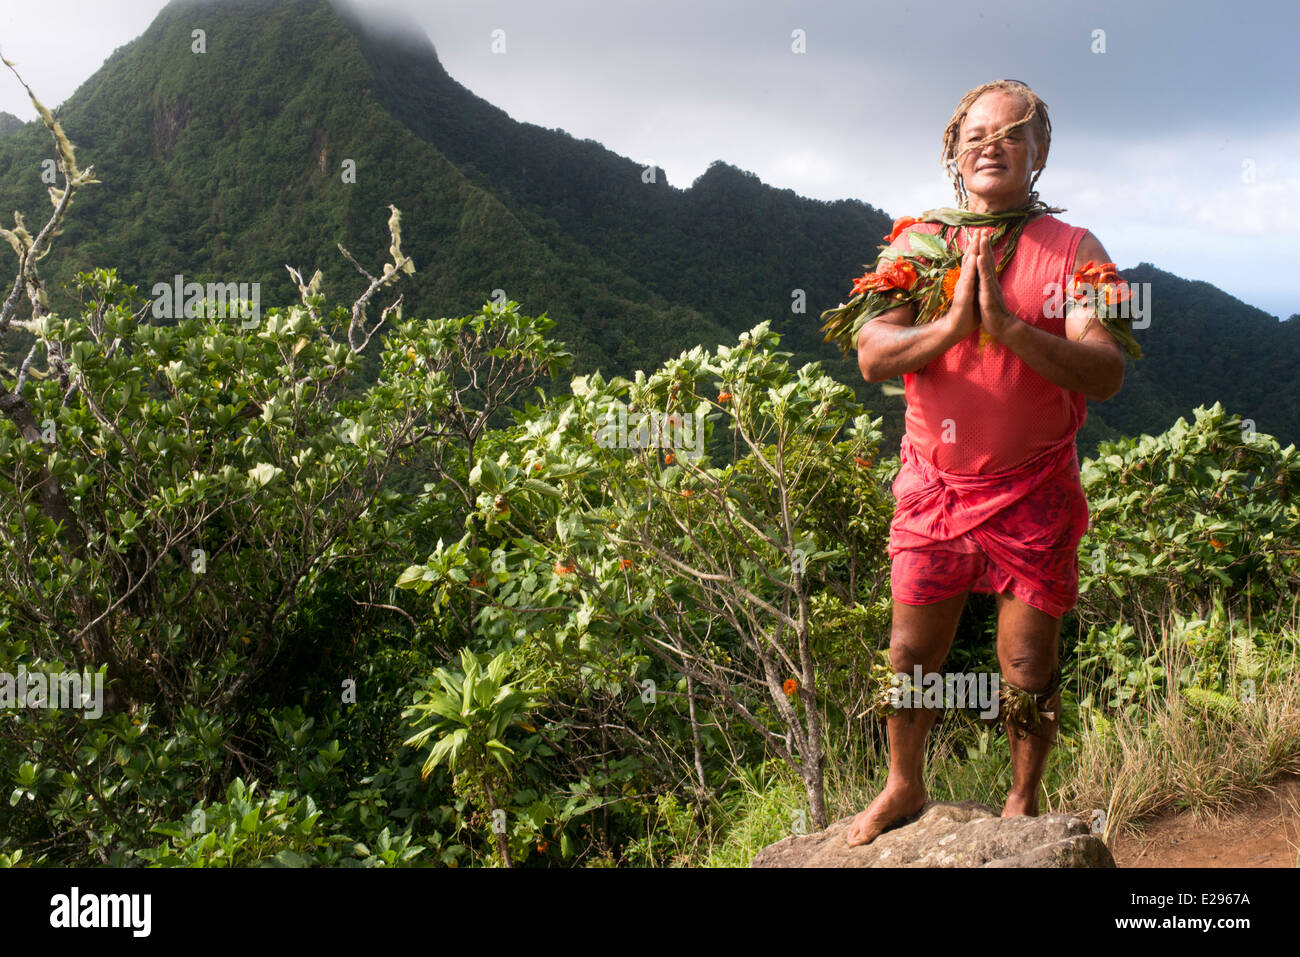 Rarotonga Island. Cook Island. Polynesia. South Pacific Ocean. Pa's Cross Island Walk.  Trekking in the mountains - Stock Image